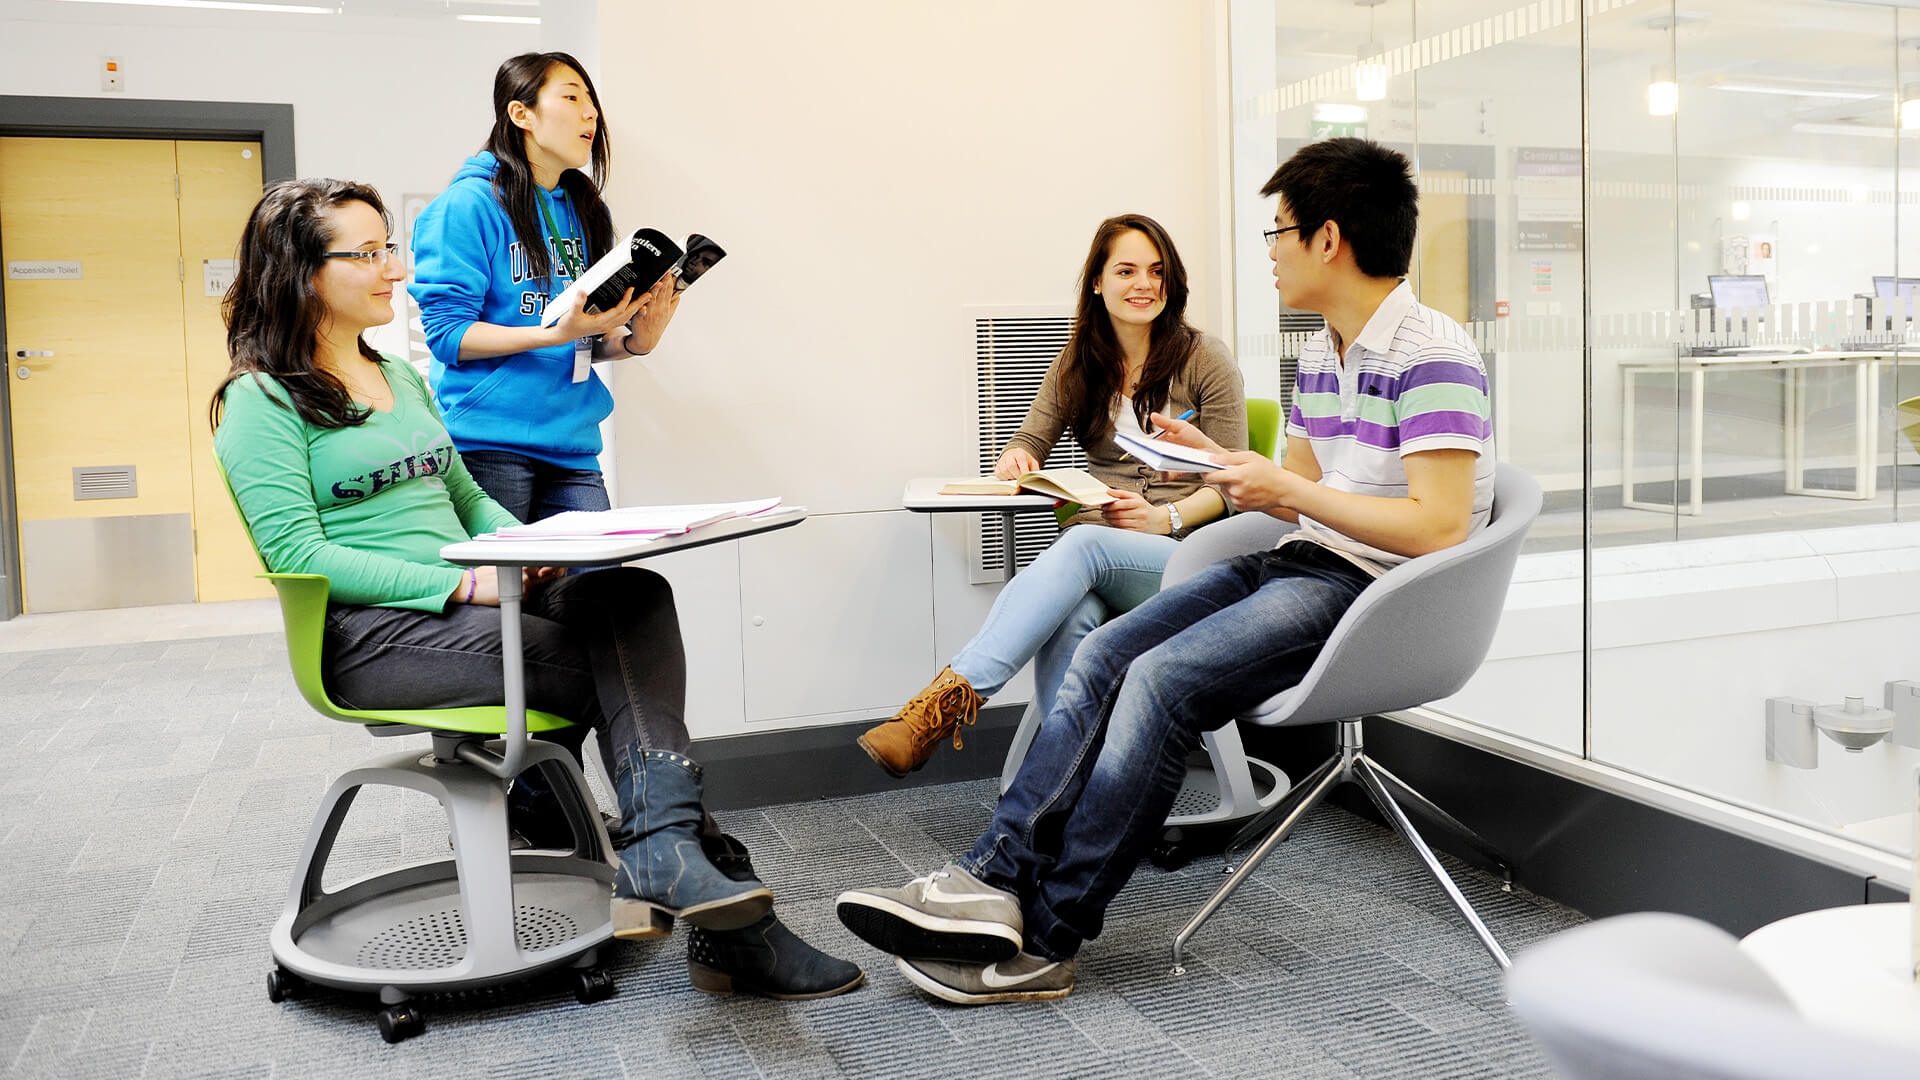 Students studying in the University of Stirling campus library